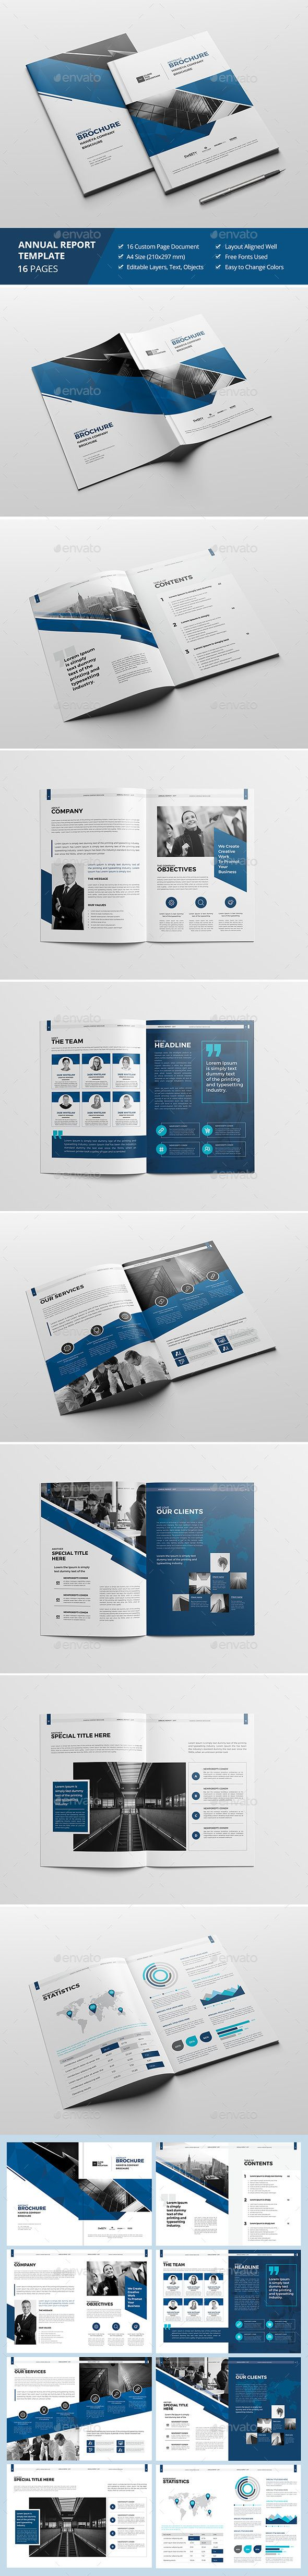 Haweya Annual Report 04  — InDesign Template #a4 #brand • Download ➝ https://graphicriver.net/item/haweya-annual-report-04/18101191?ref=pxcr